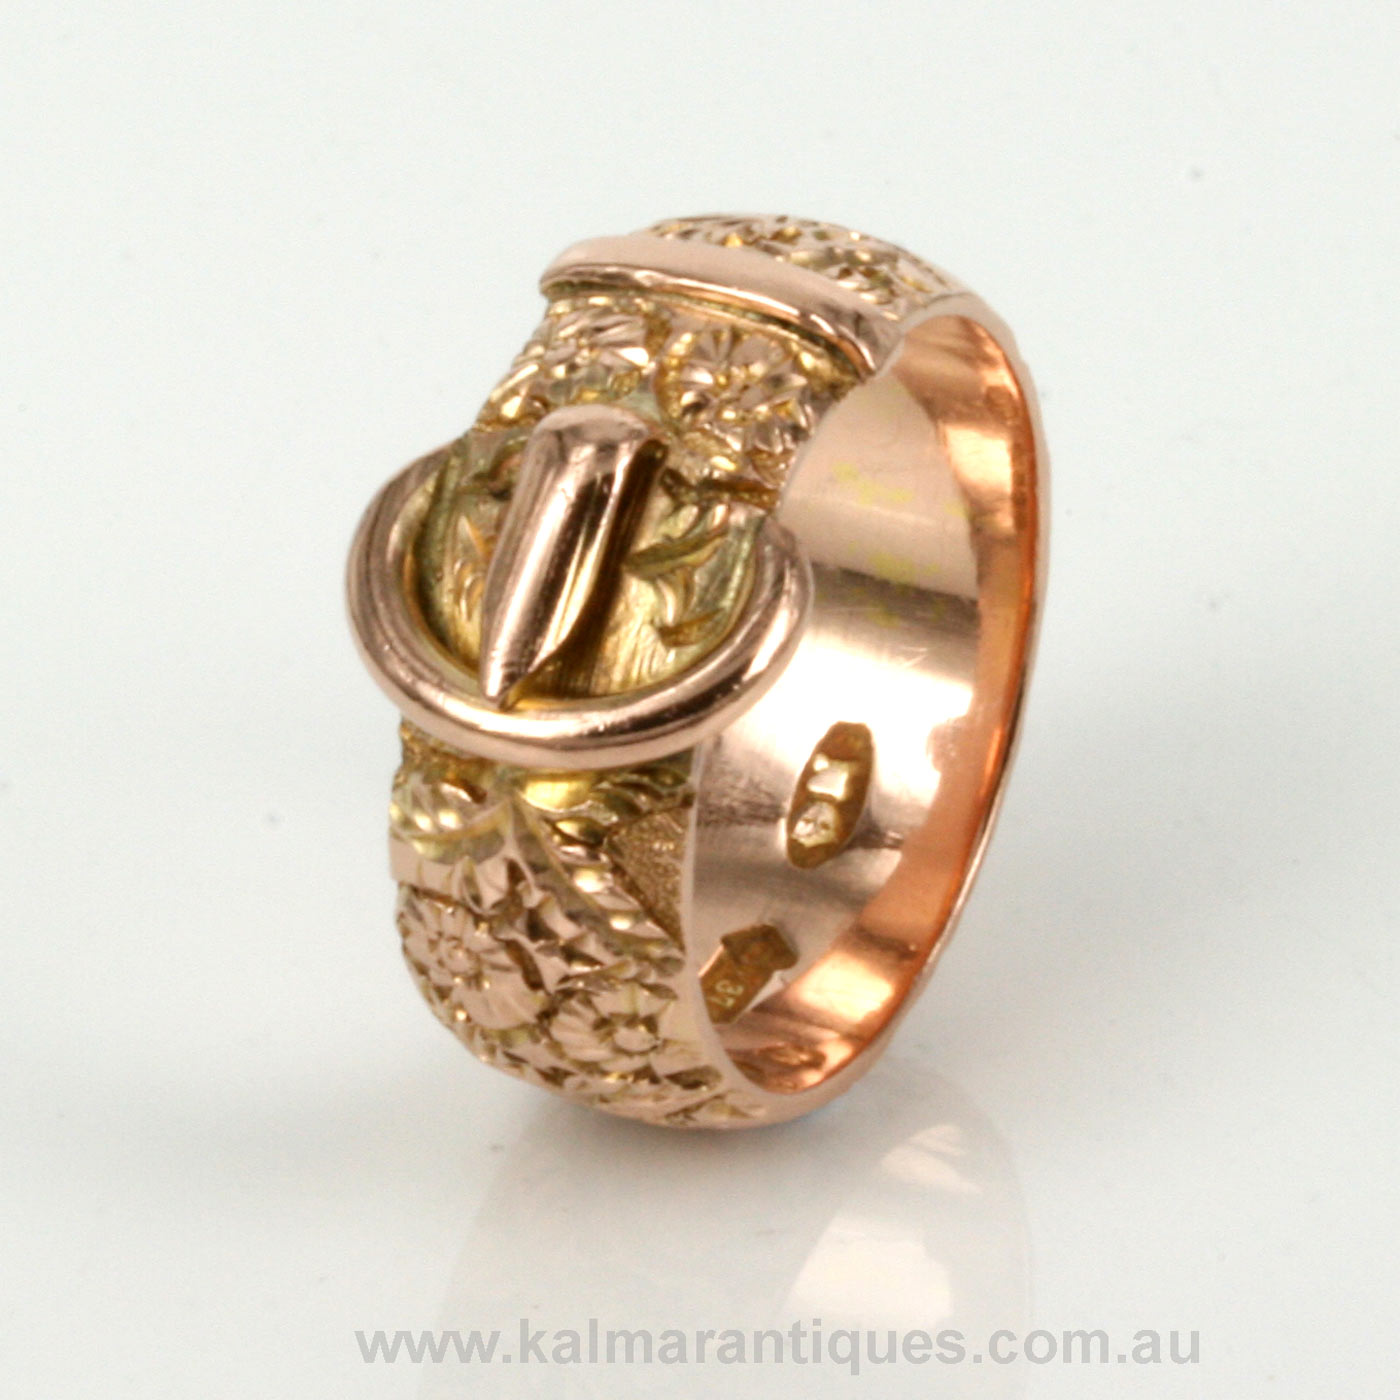 Buy Antique Rose Gold Buckle Ring Sold Items Sold Rings